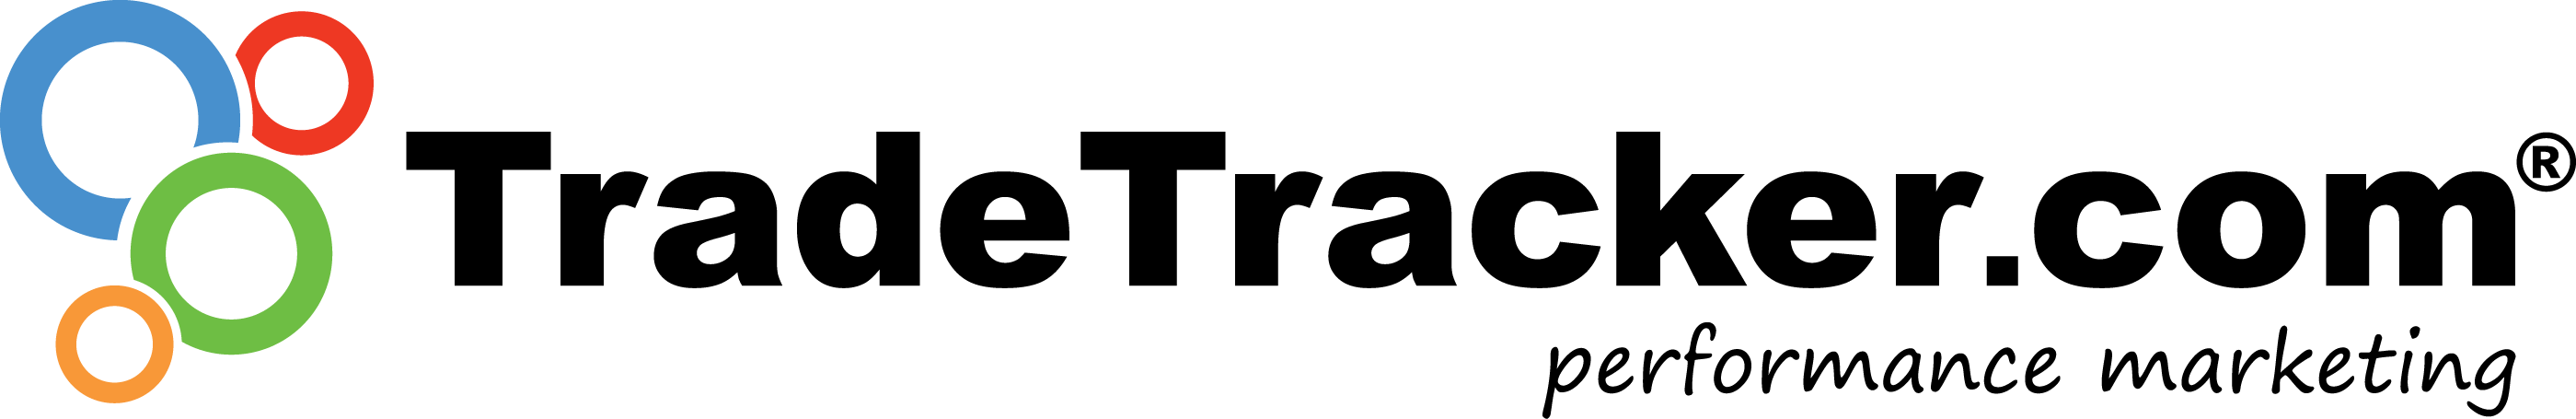 Word nu direct affiliate en meld je aan bij TradeTracker, onze partner!